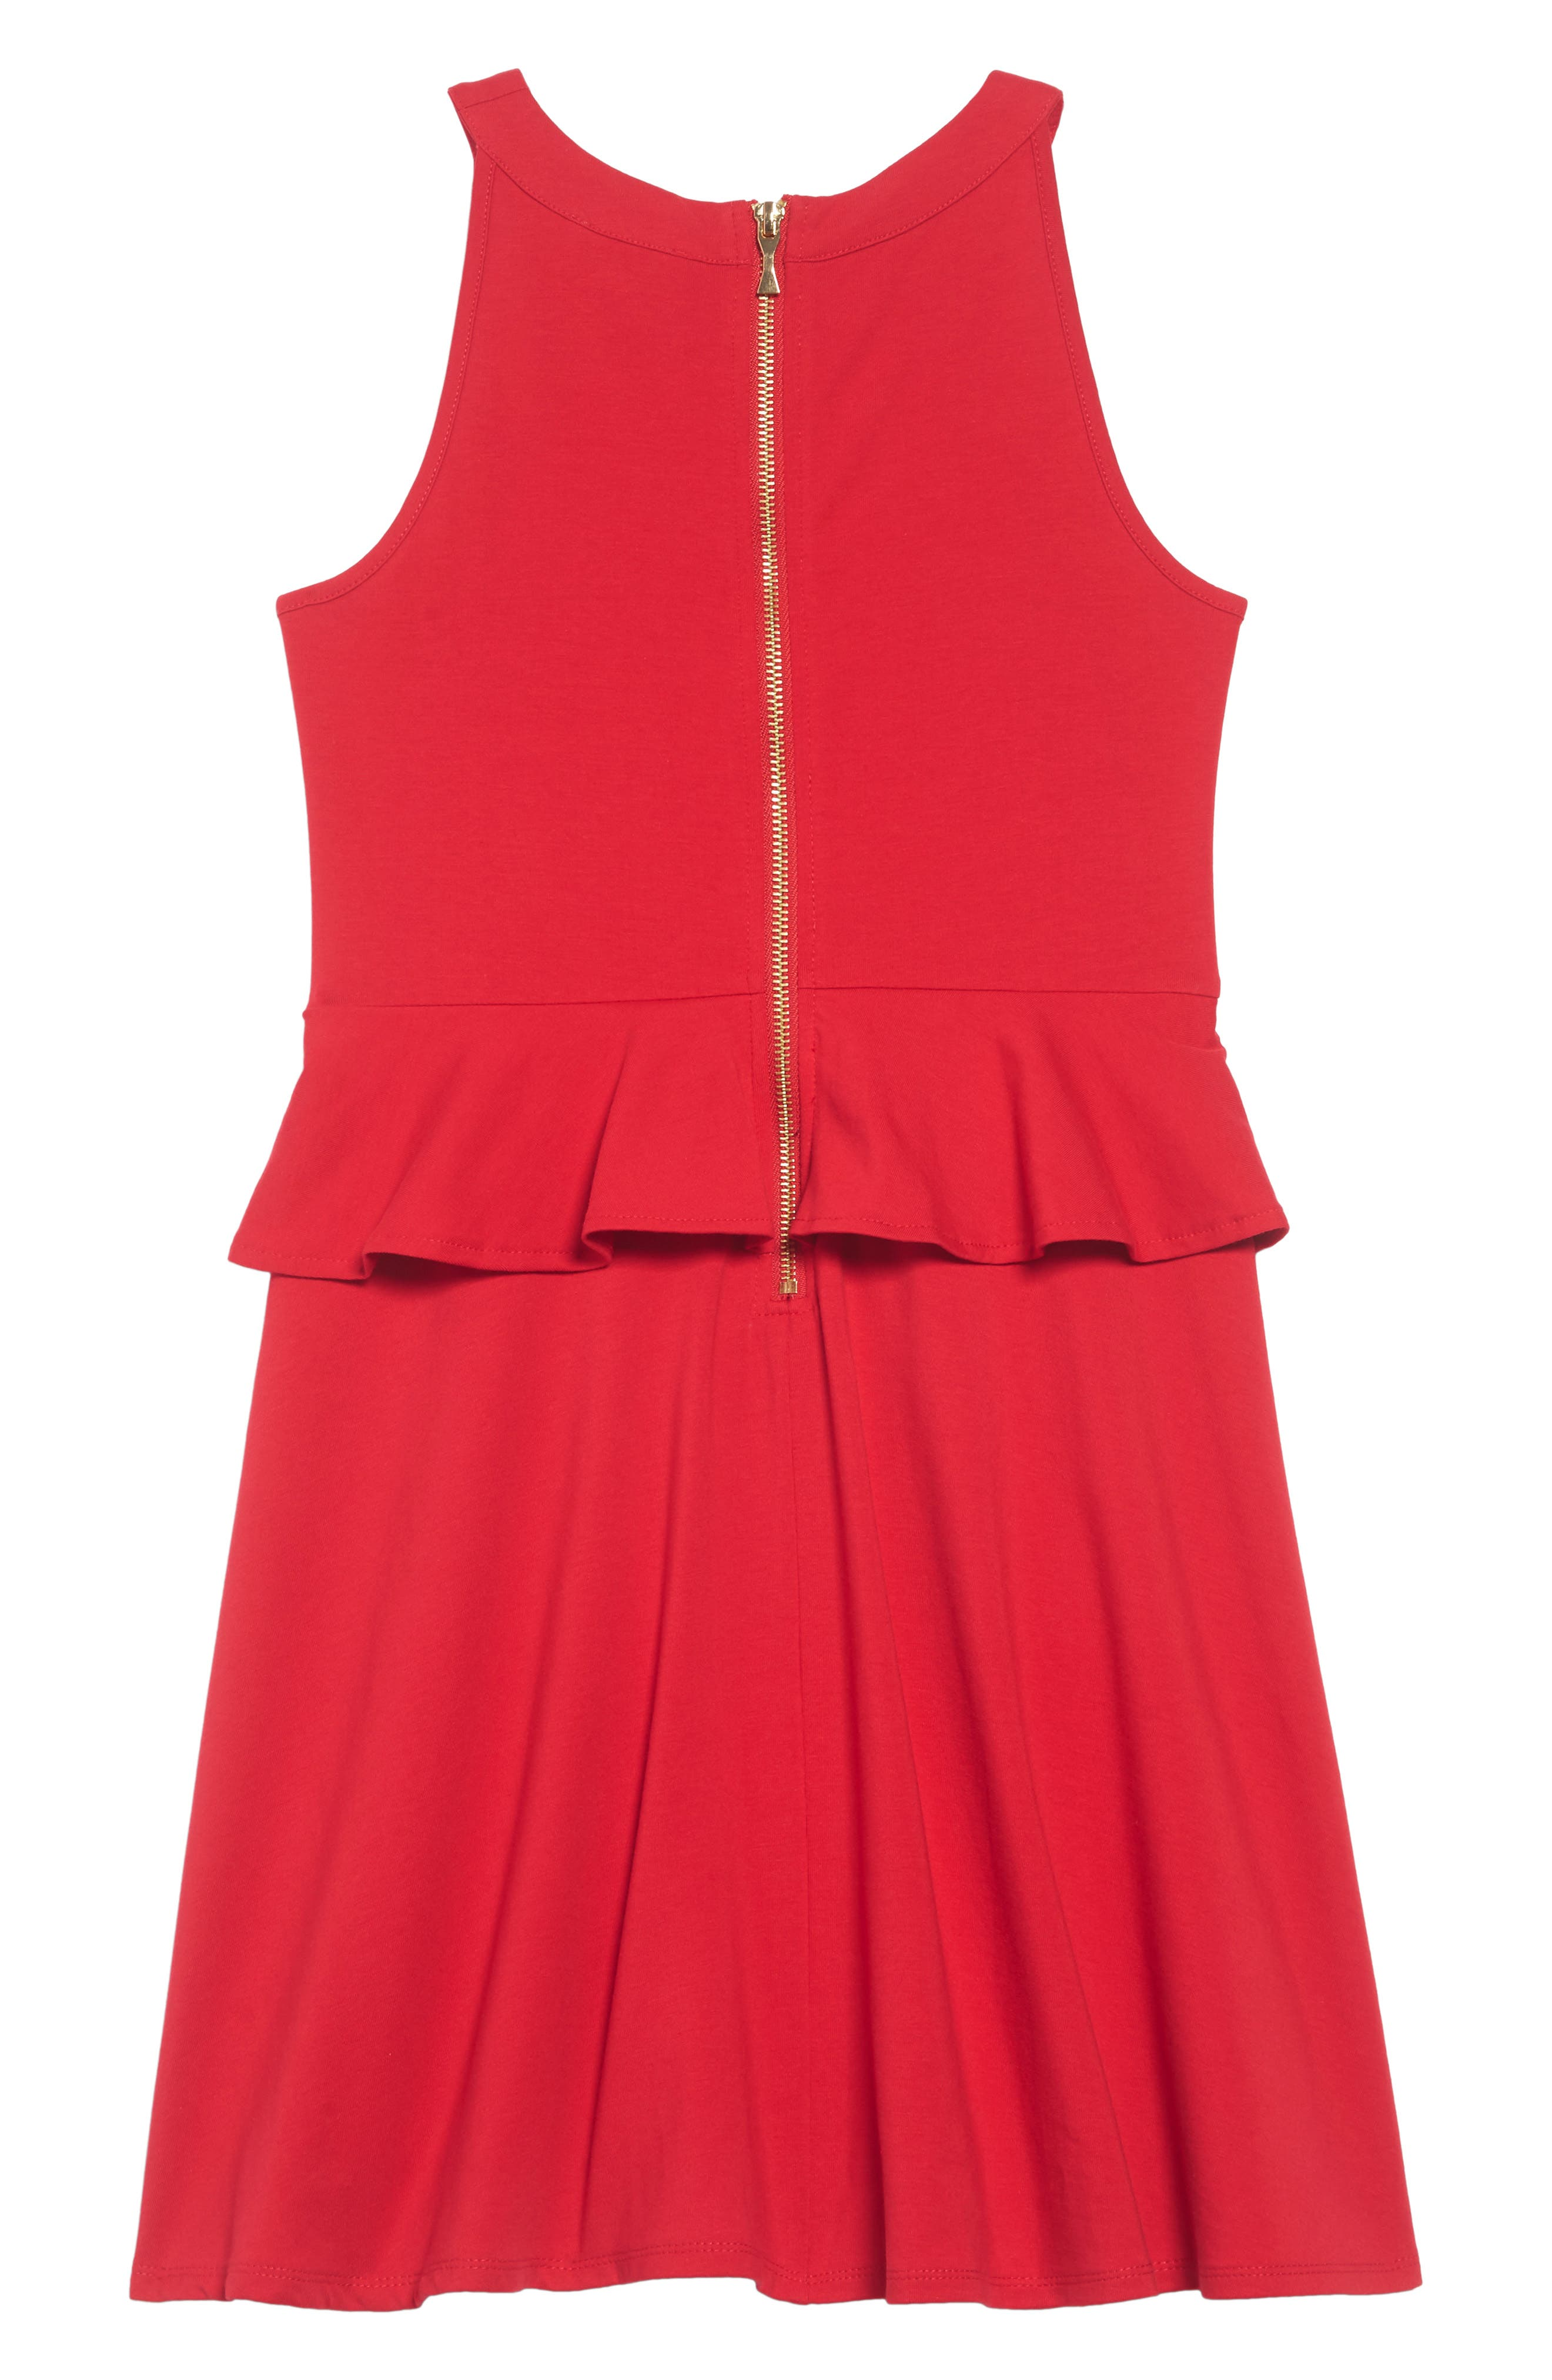 peplum dress,                             Alternate thumbnail 2, color,                             CHARM RED